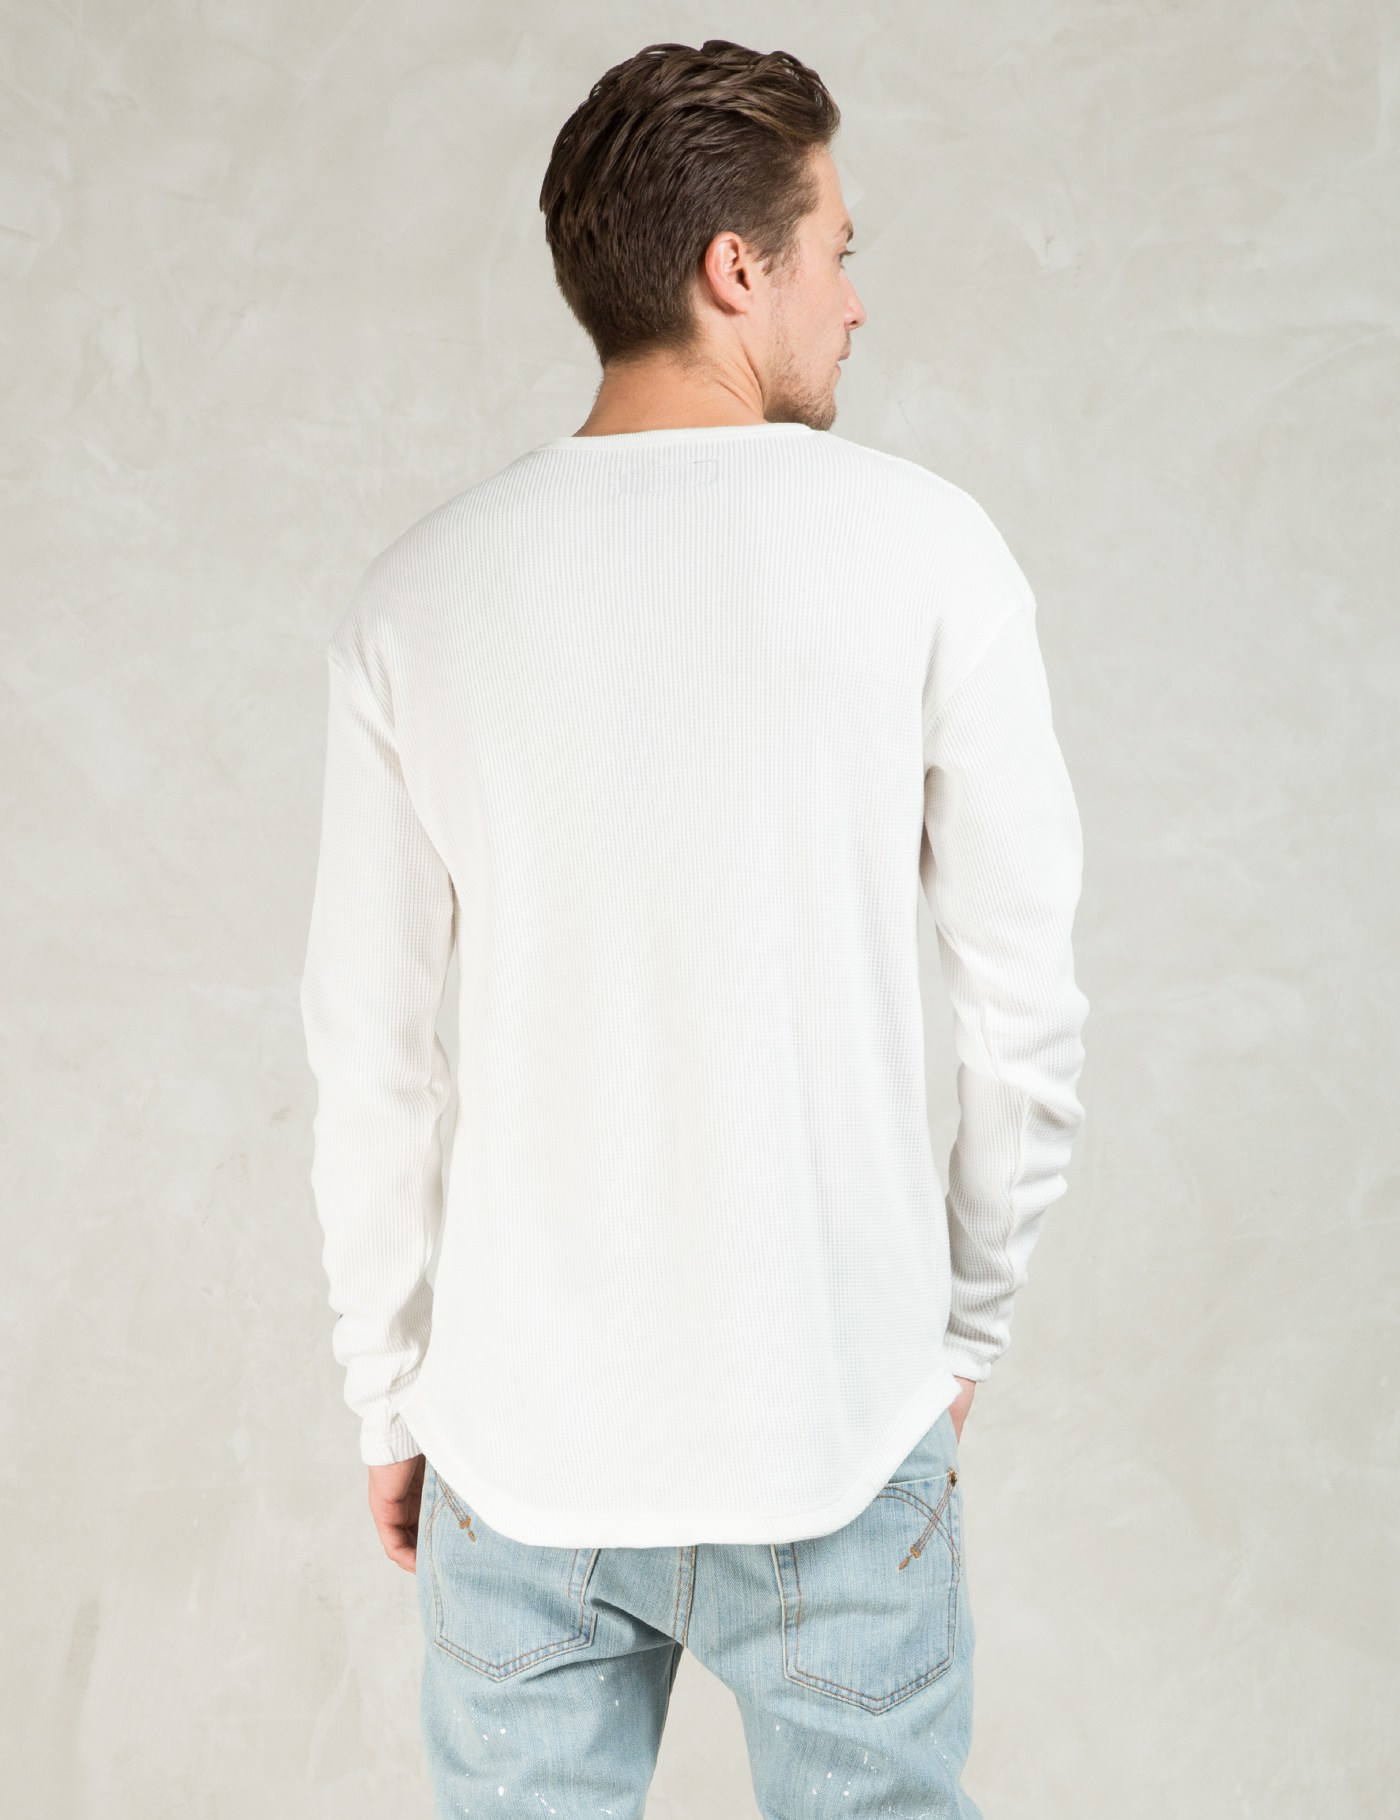 White l s dvsn thermal t shirt in white for men lyst for White thermal t shirt